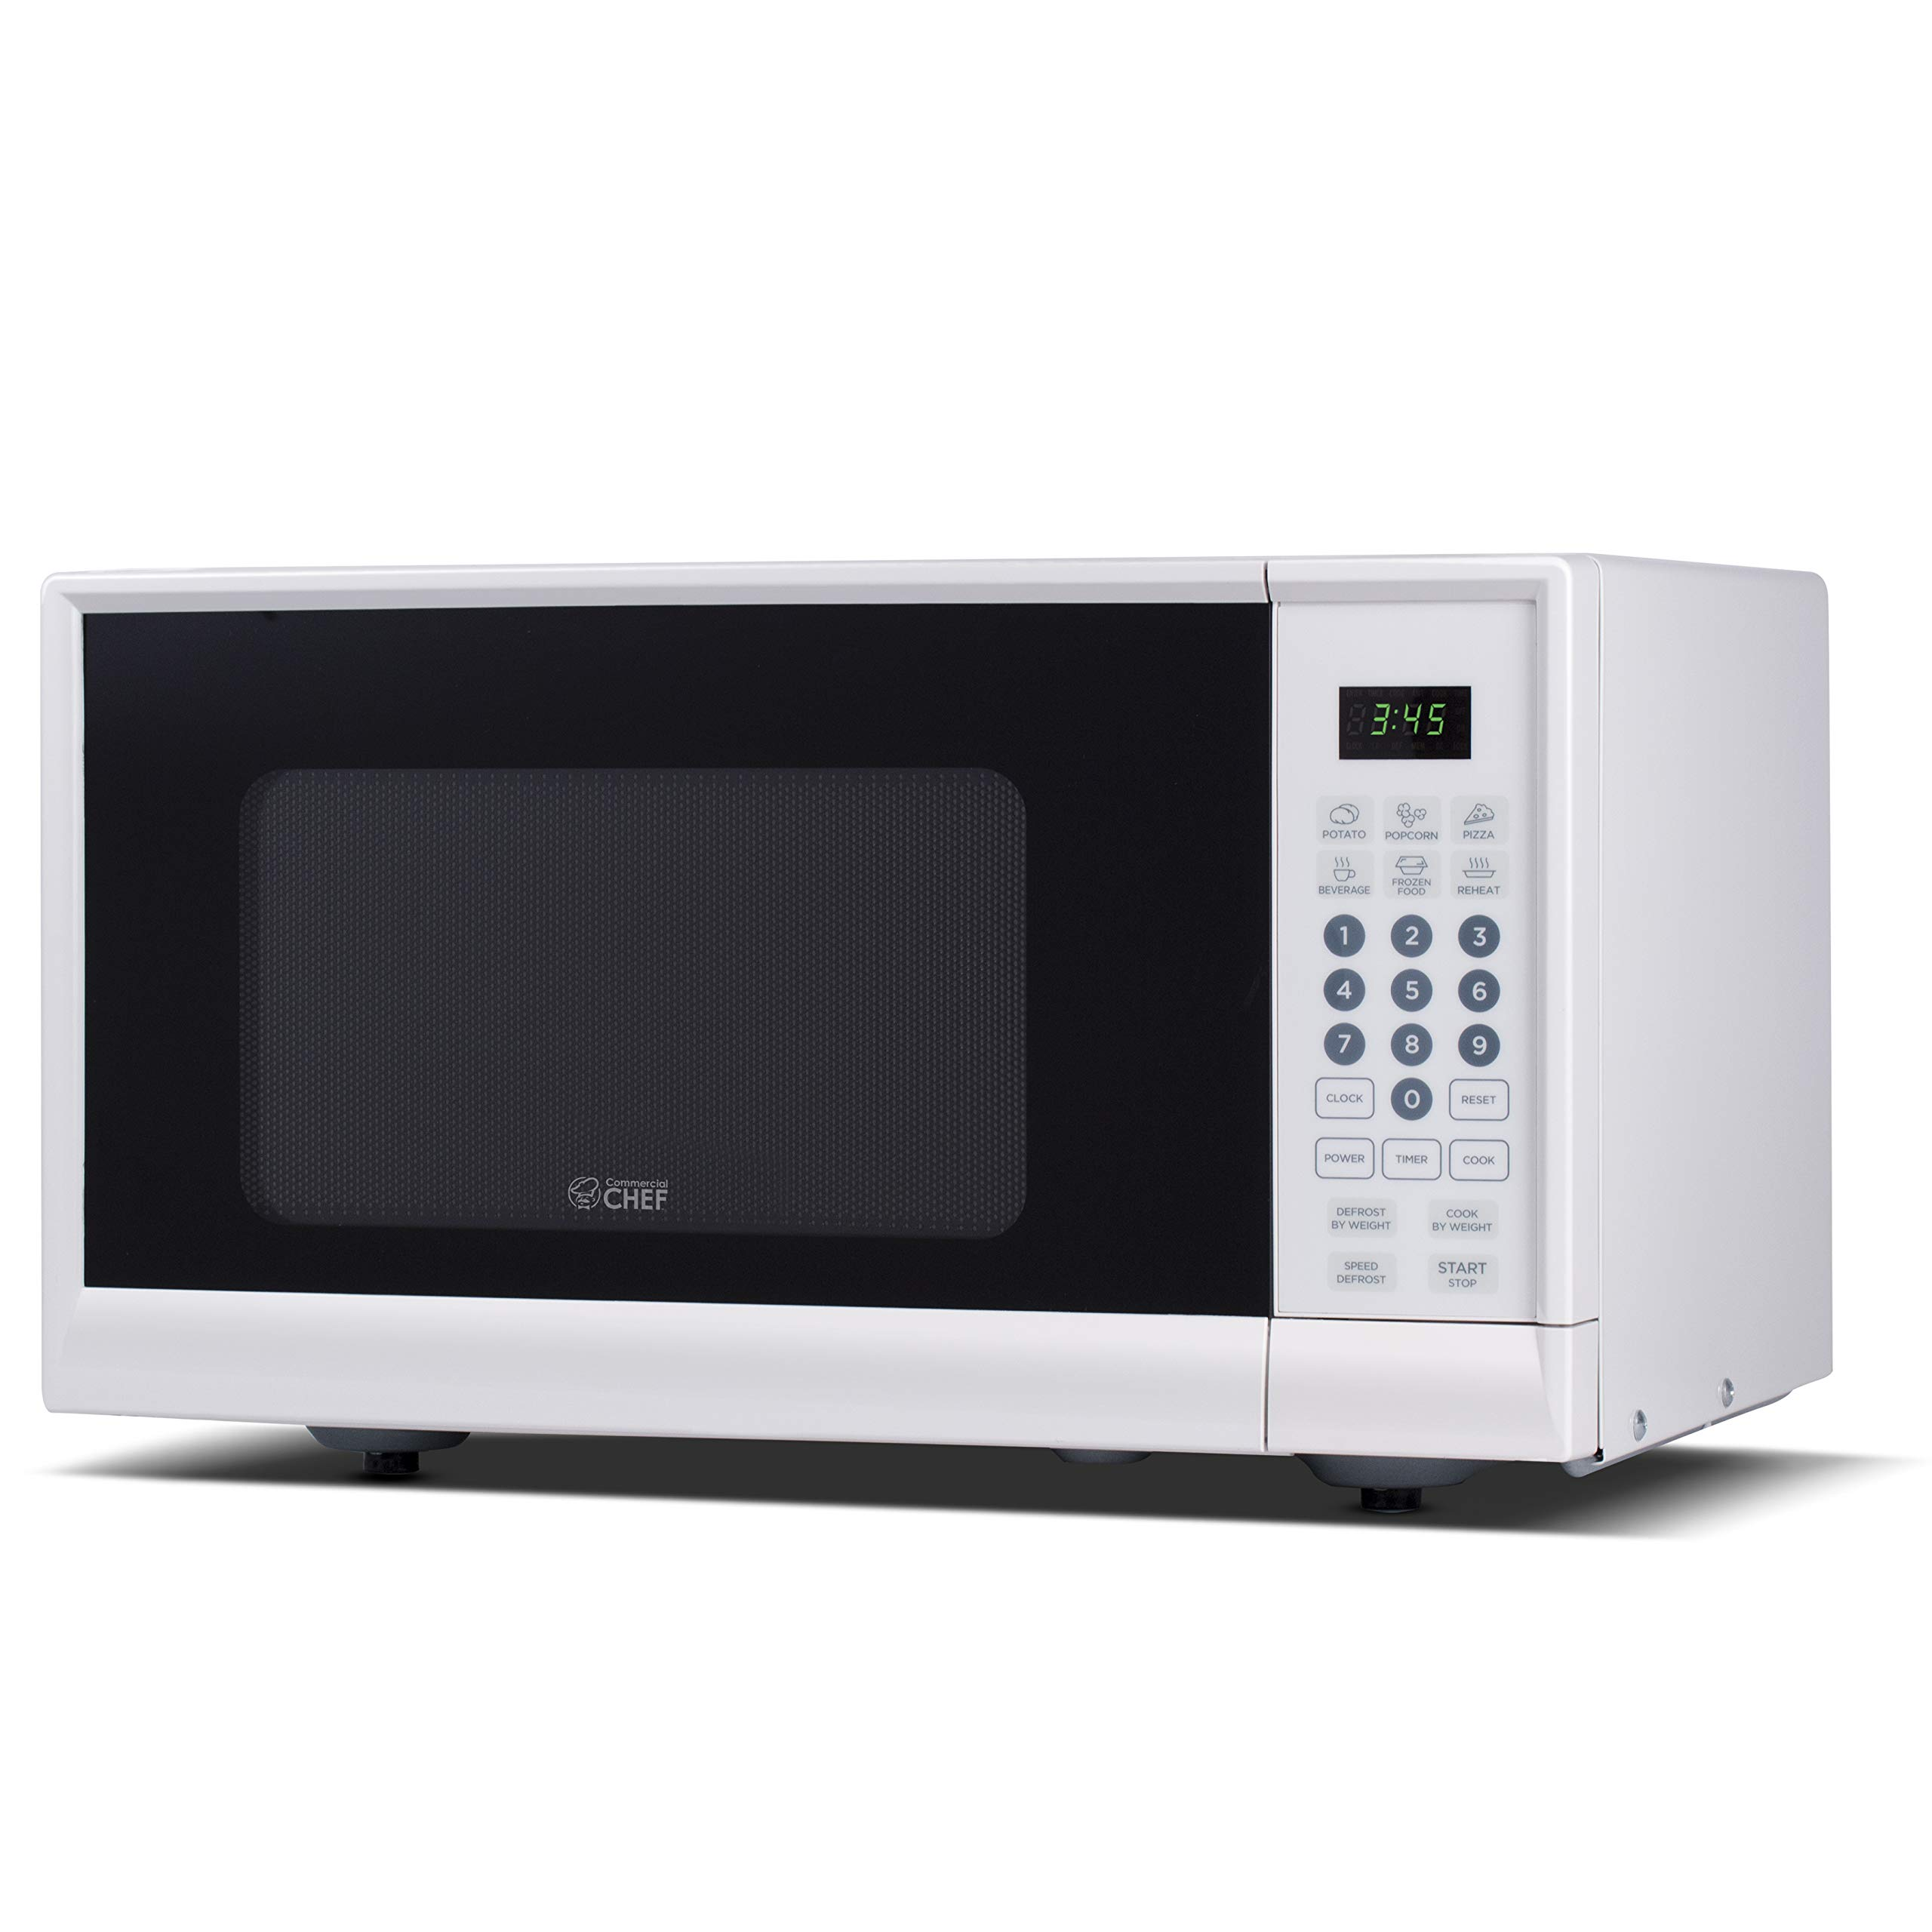 Commercial Chef CHM990W 900 Watt Counter Top Microwave Oven, 0.9 Cubic Feet, White Cabinet by Commercial CHEF